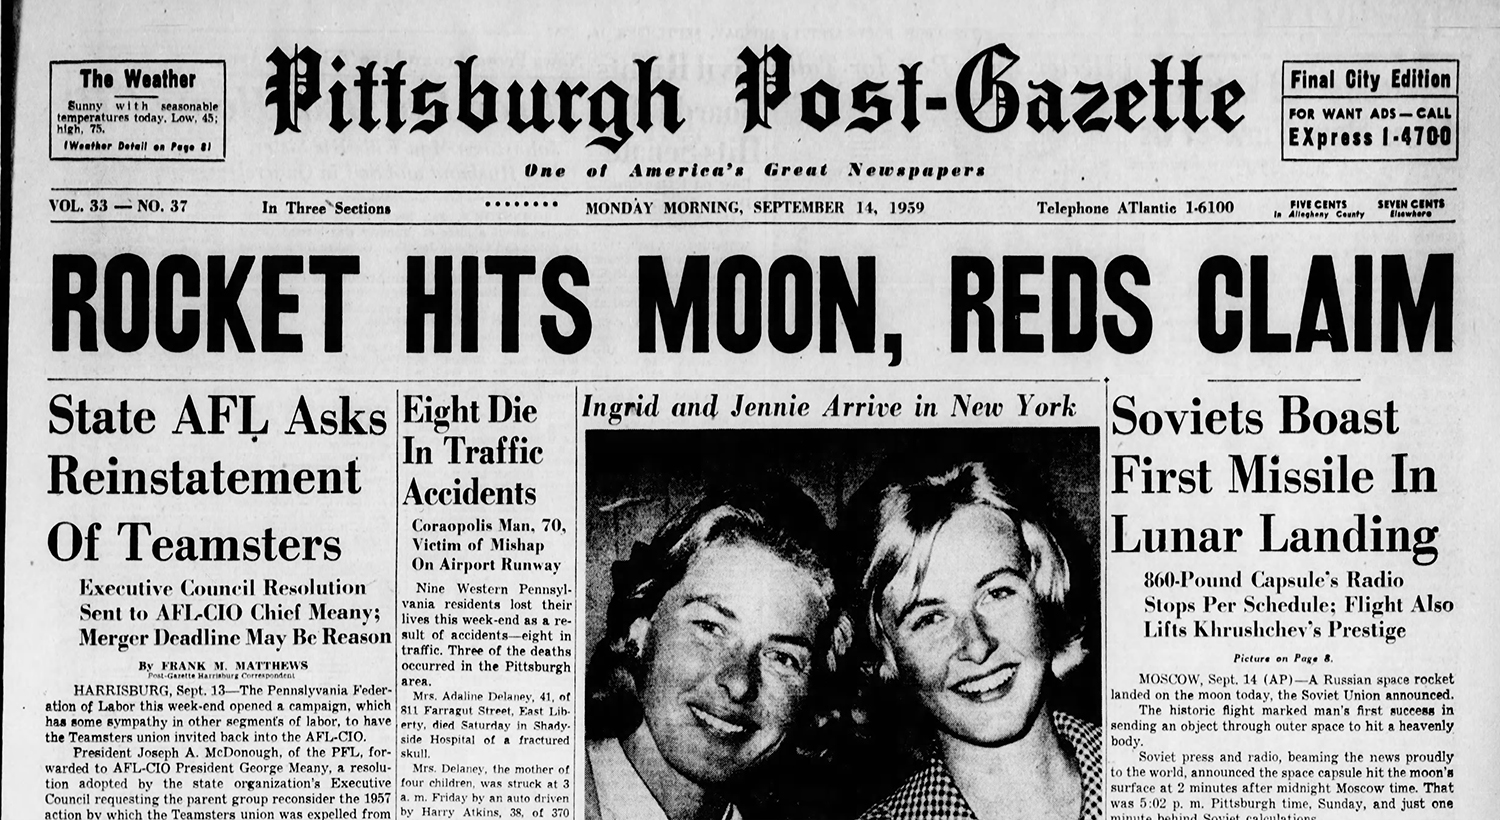 Newspaper headline on the morning of September 14, 1959. Pittsburgh Post-Gazette, September 14, 1959.